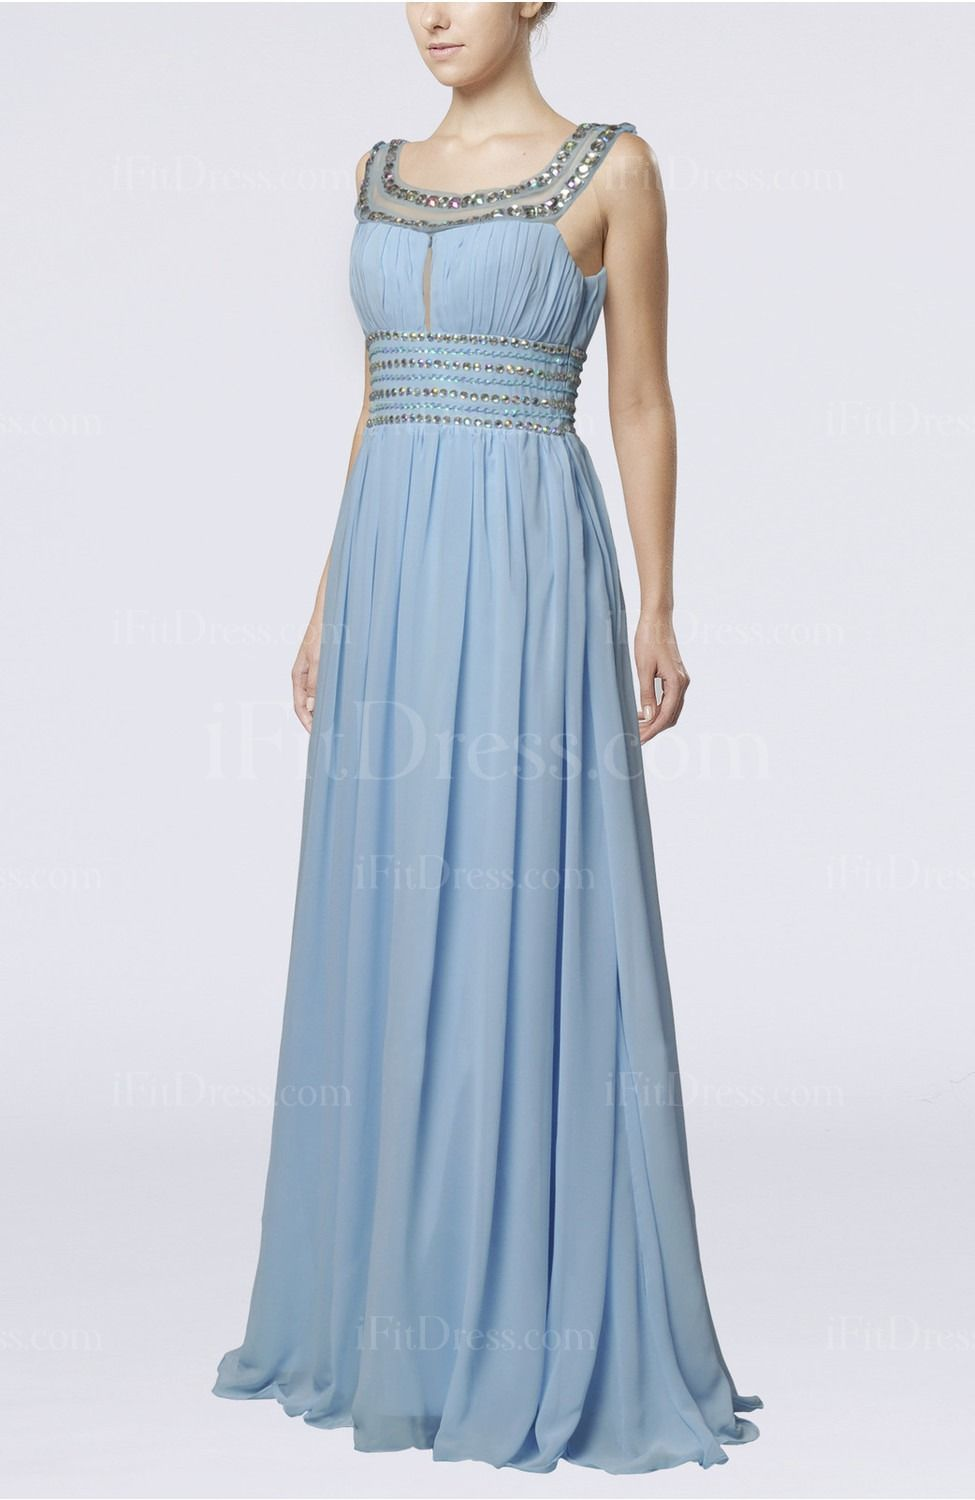 Light blue elegant empire chiffon floor length paillette wedding